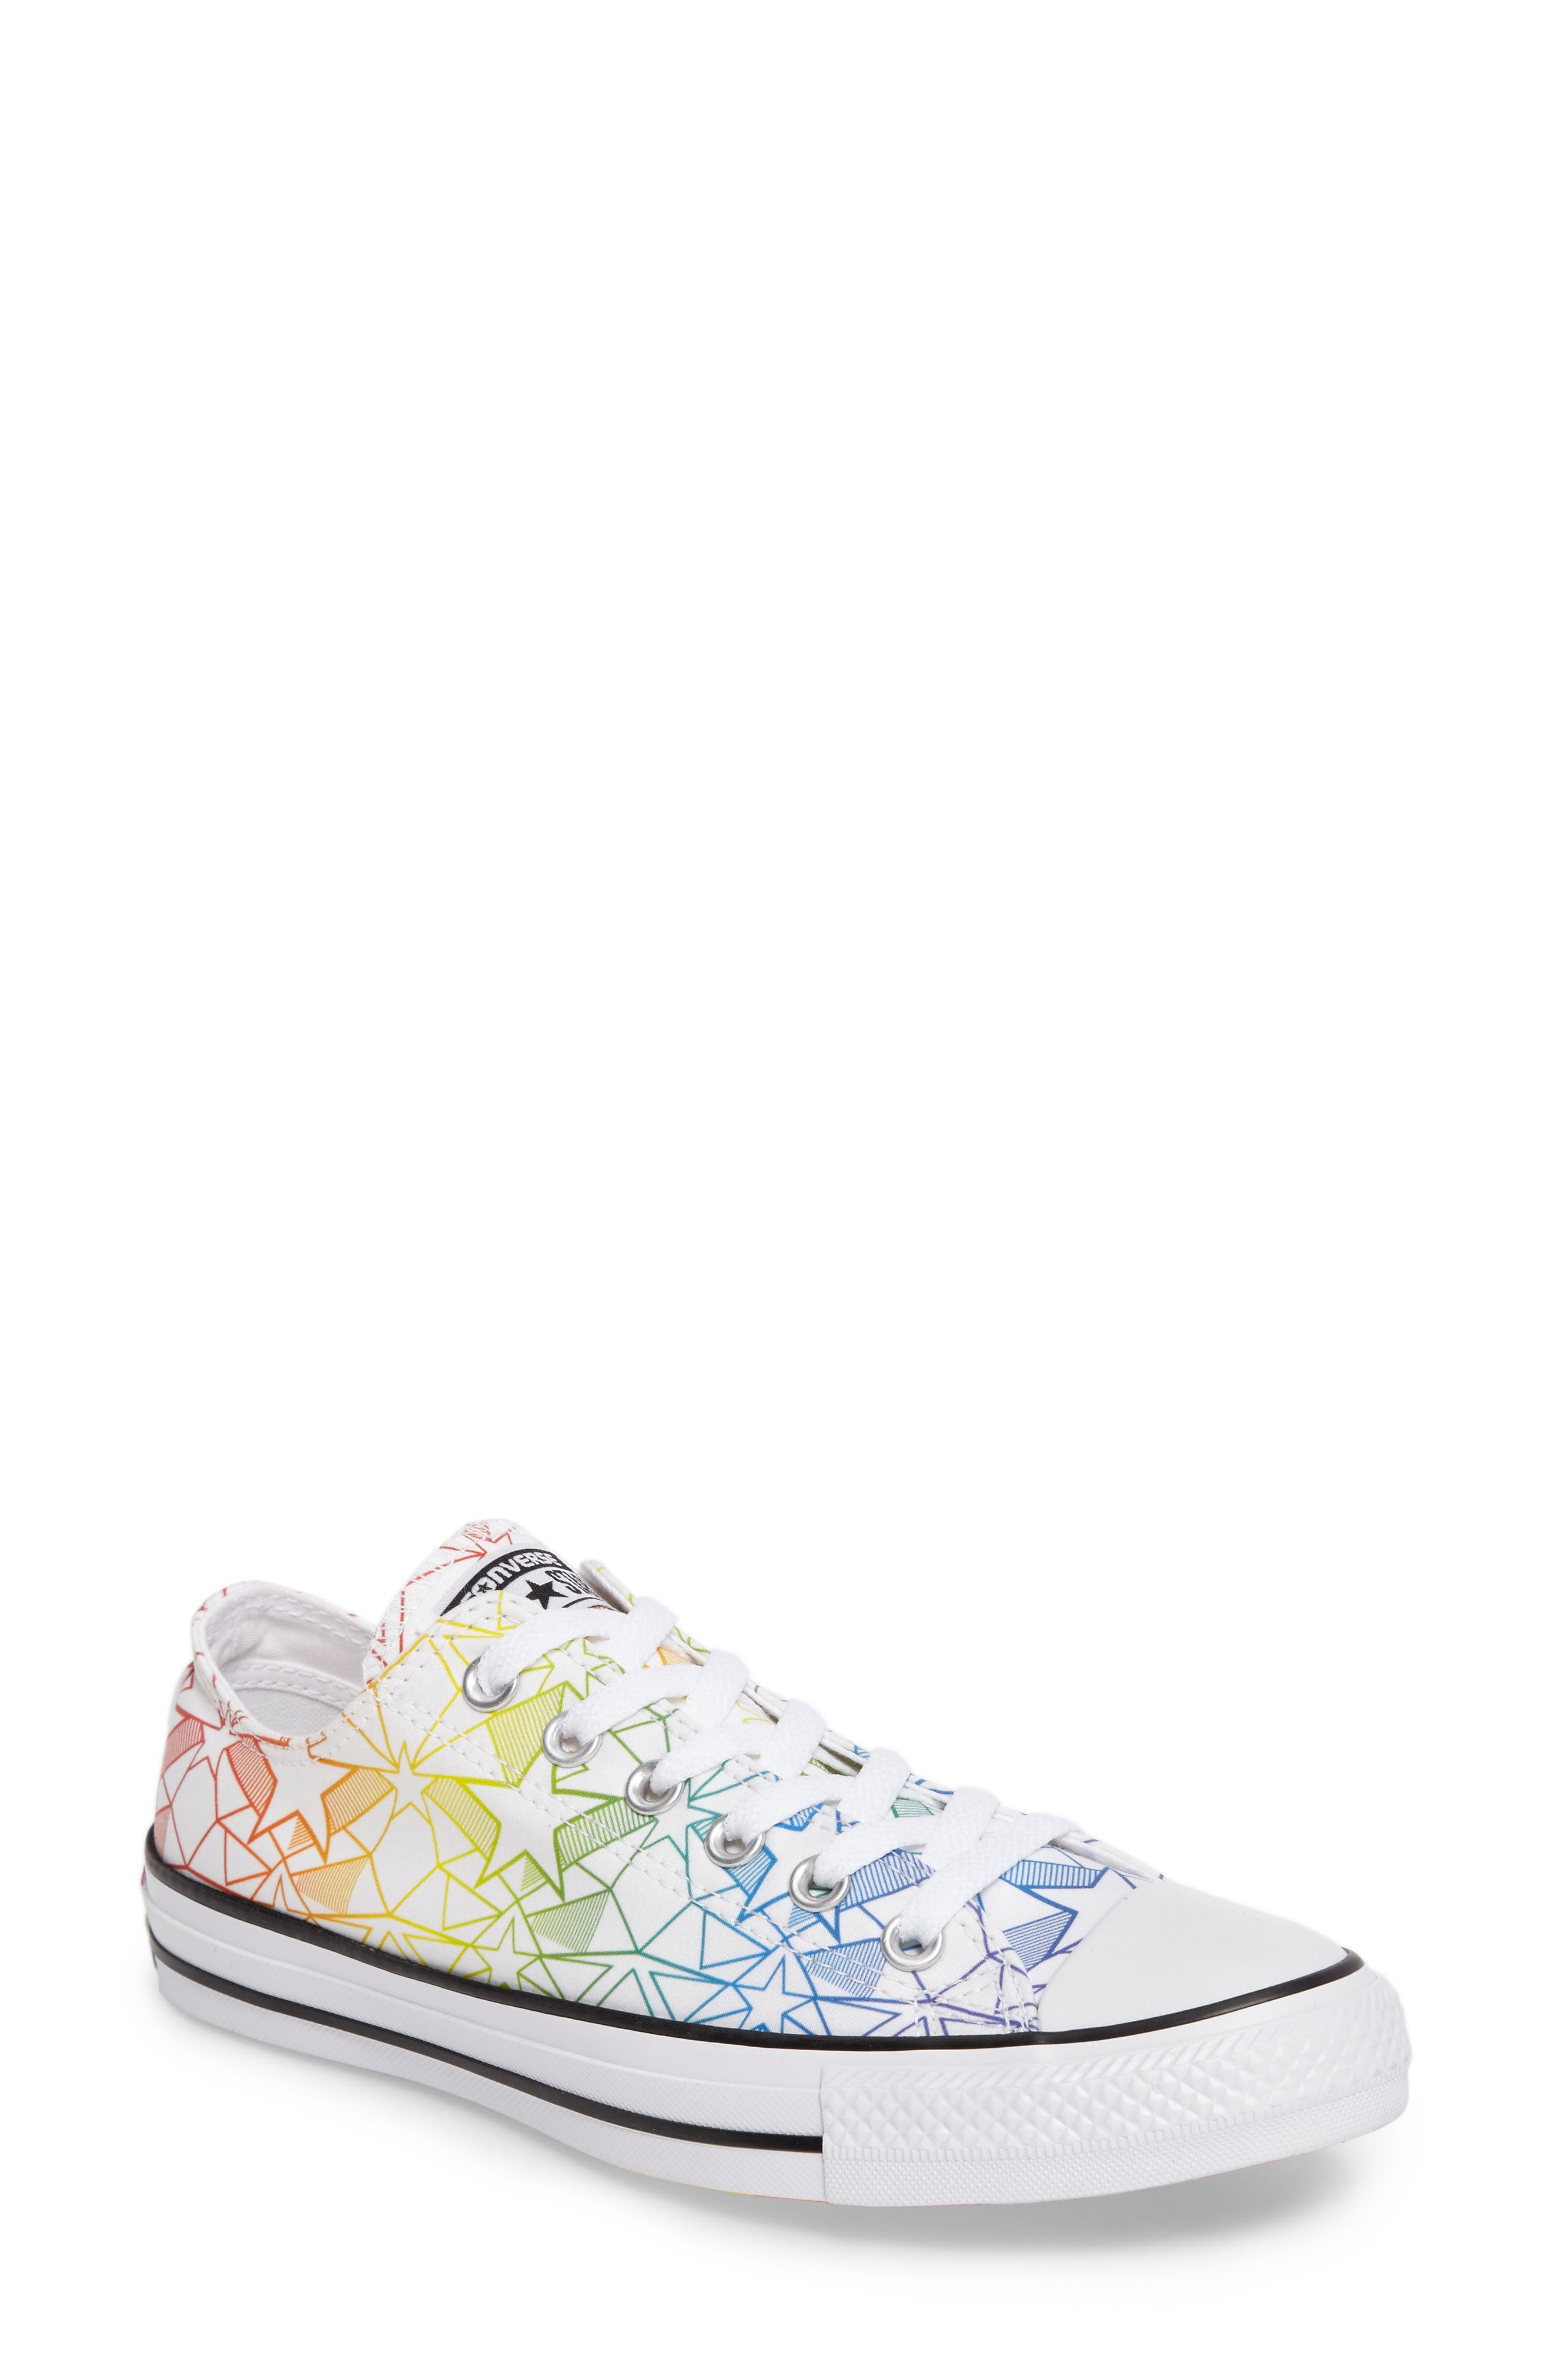 Chuck Taylor<sup>®</sup> All Star<sup>®</sup> Pride Low Top Sneaker,                         Main,                         color, 100